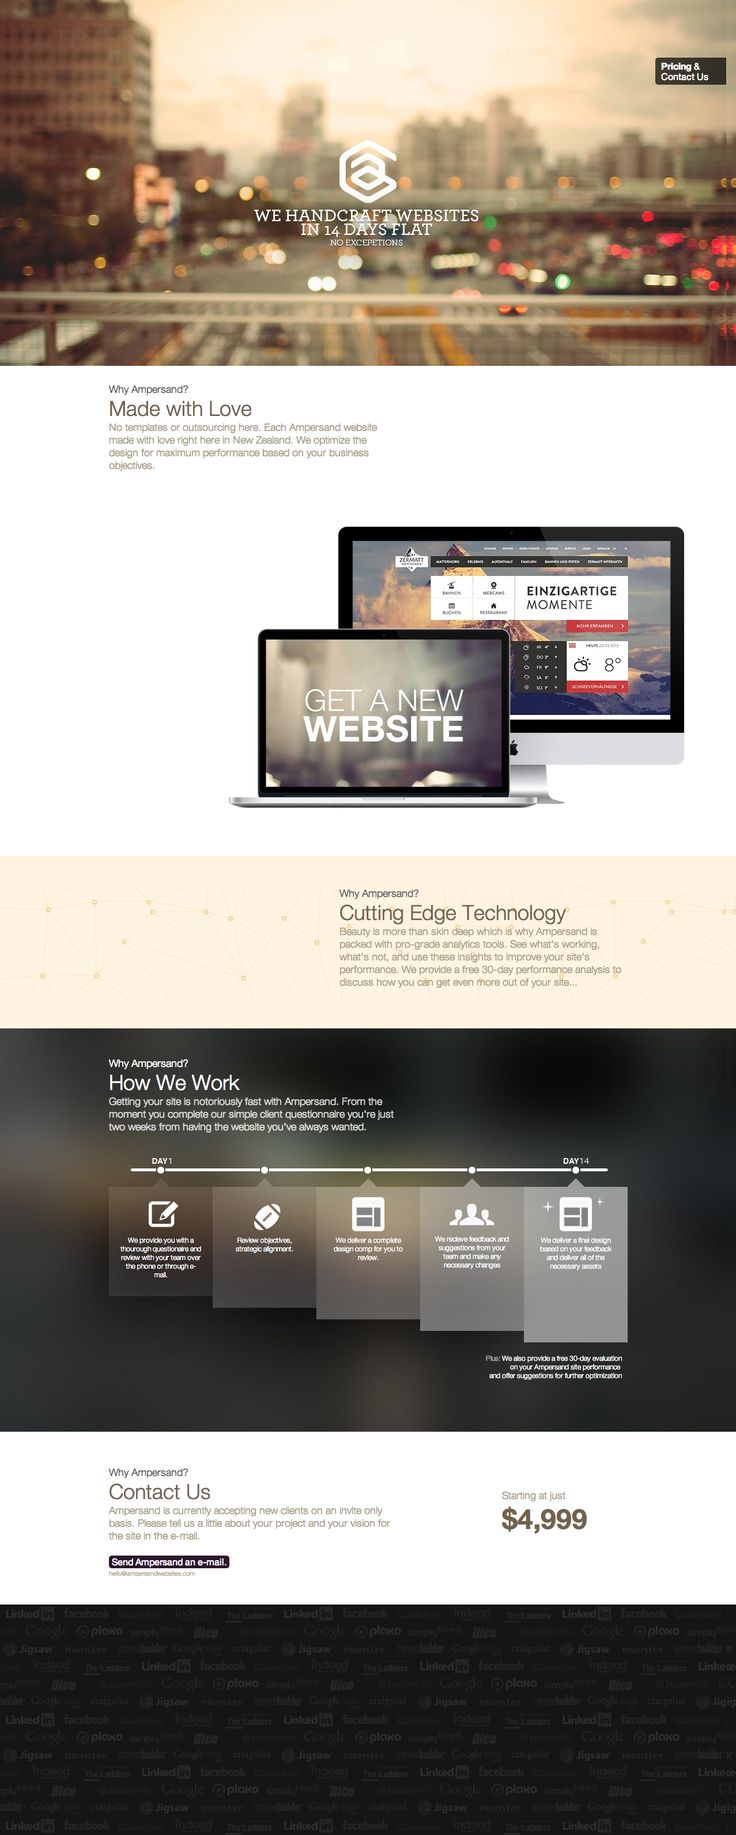 232 best Webdesign images on Pinterest | Website designs, Design ...